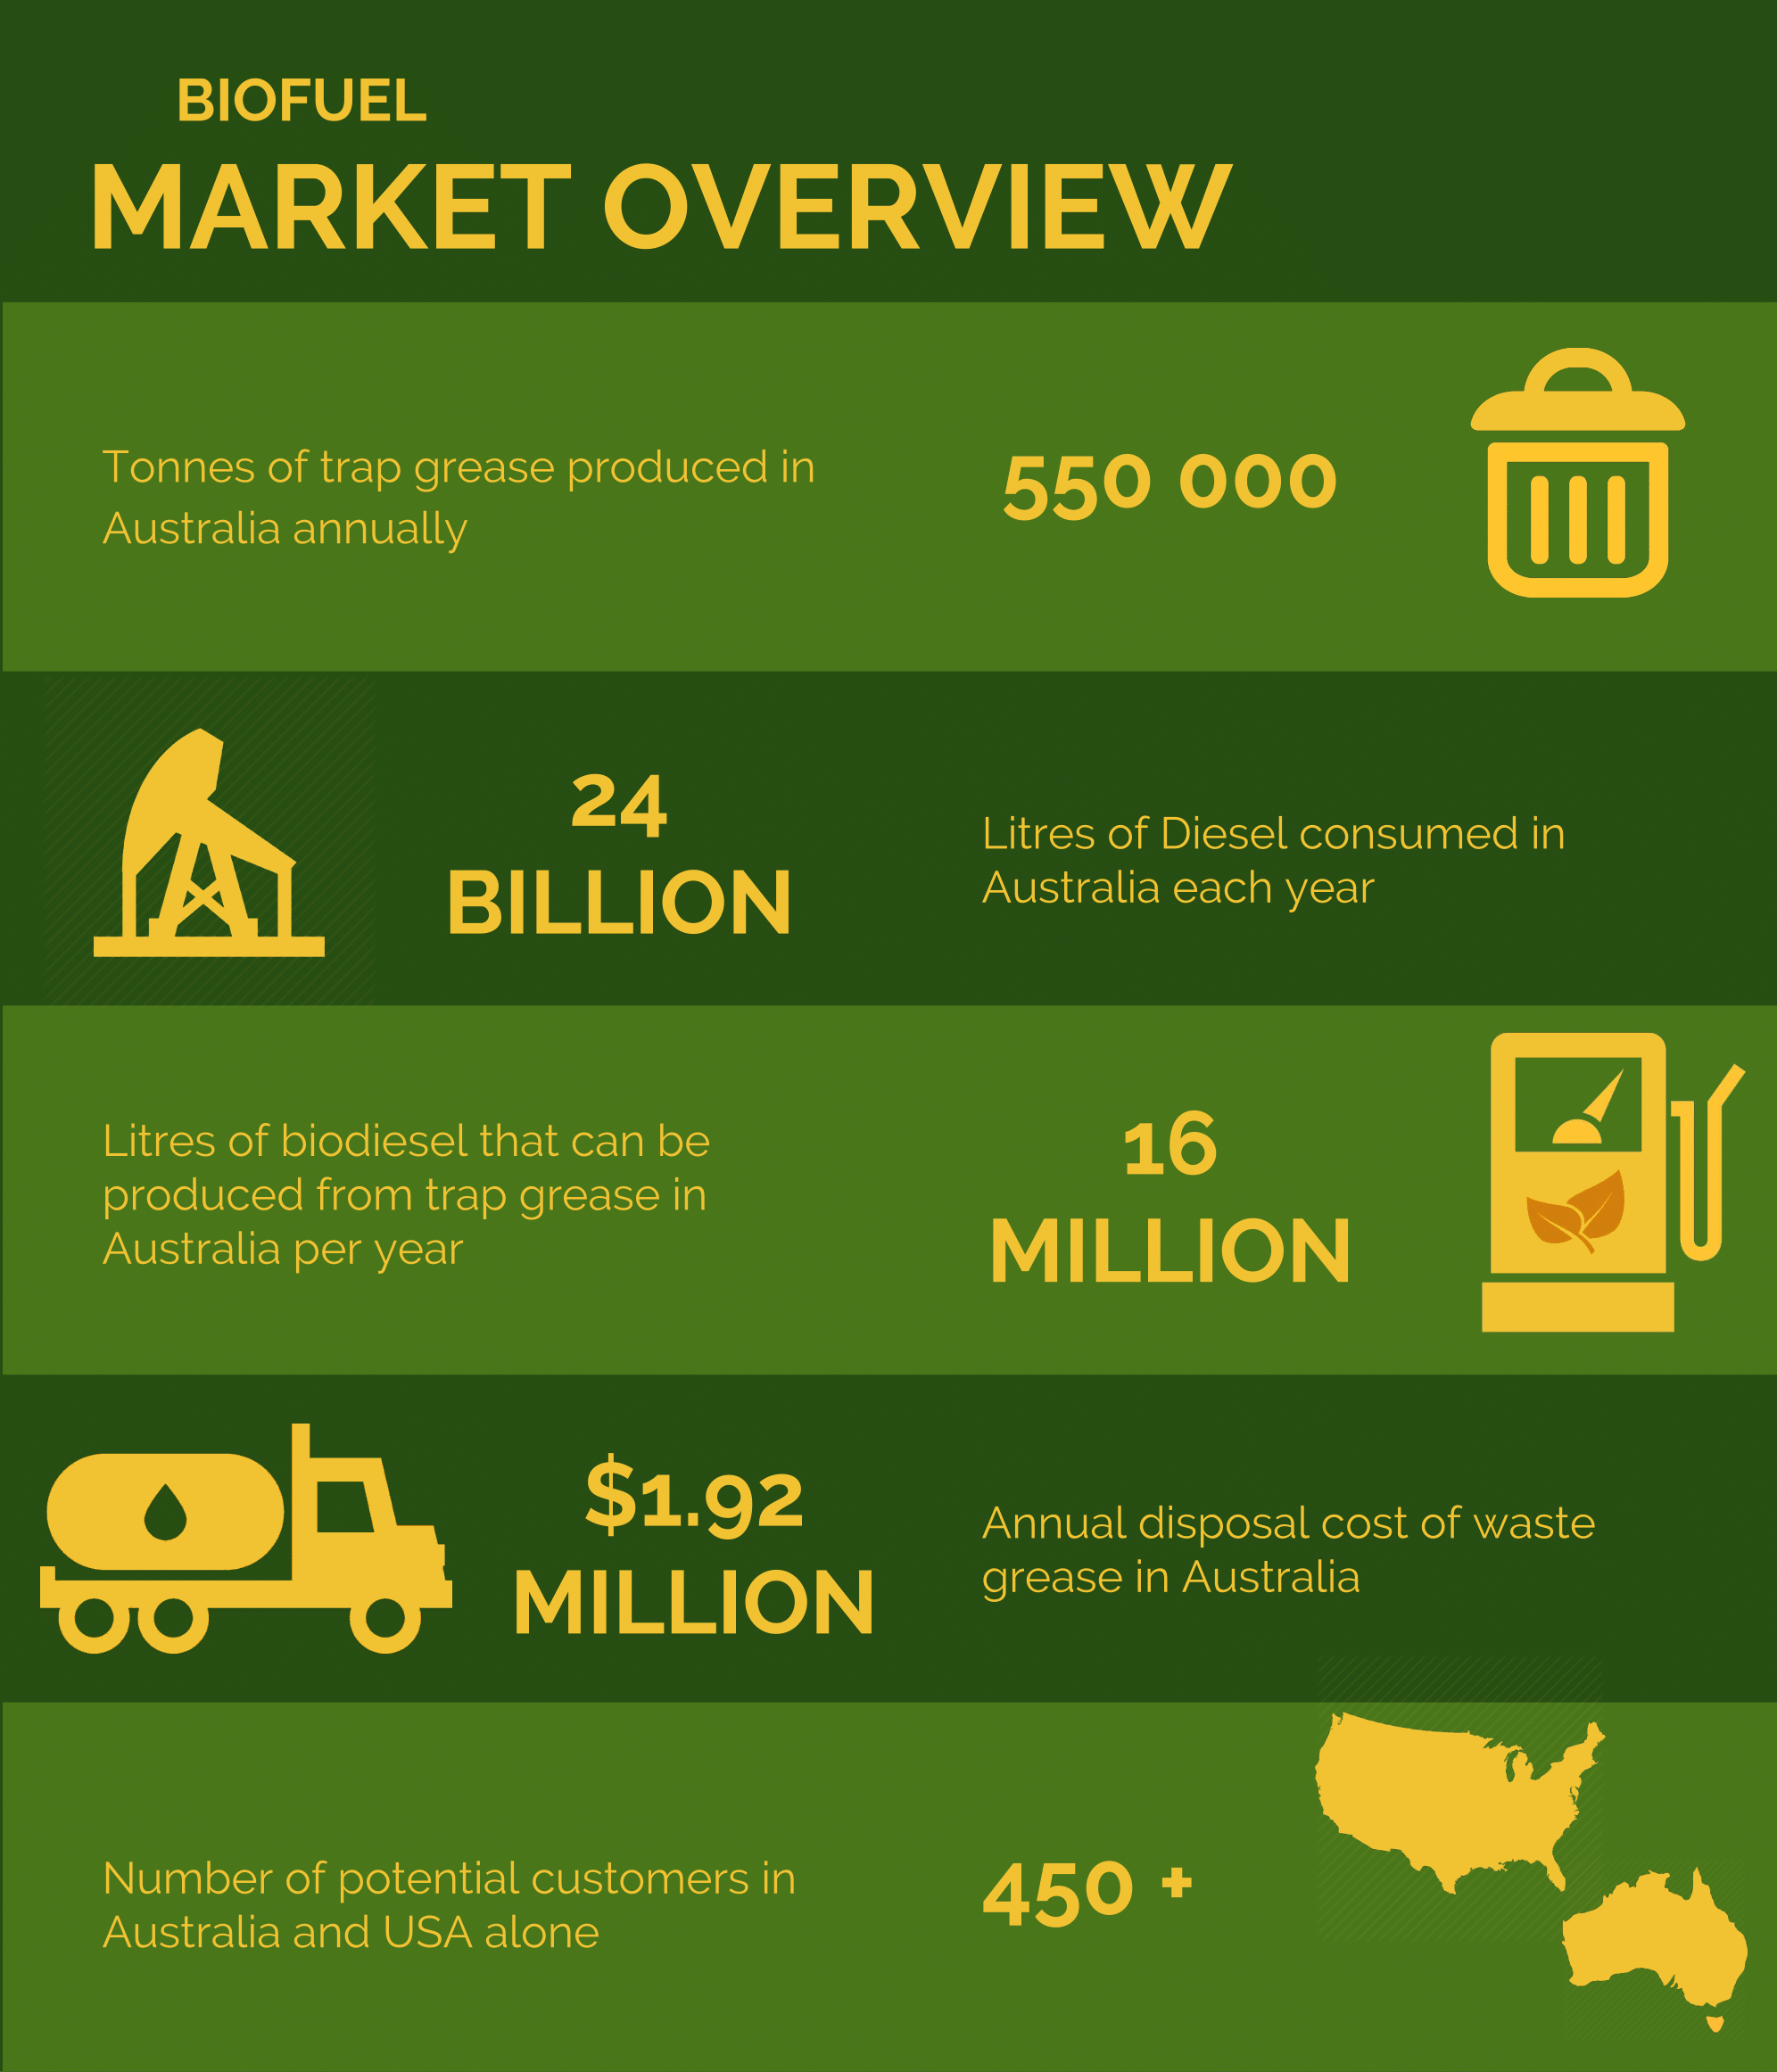 market overview infographic-1.png